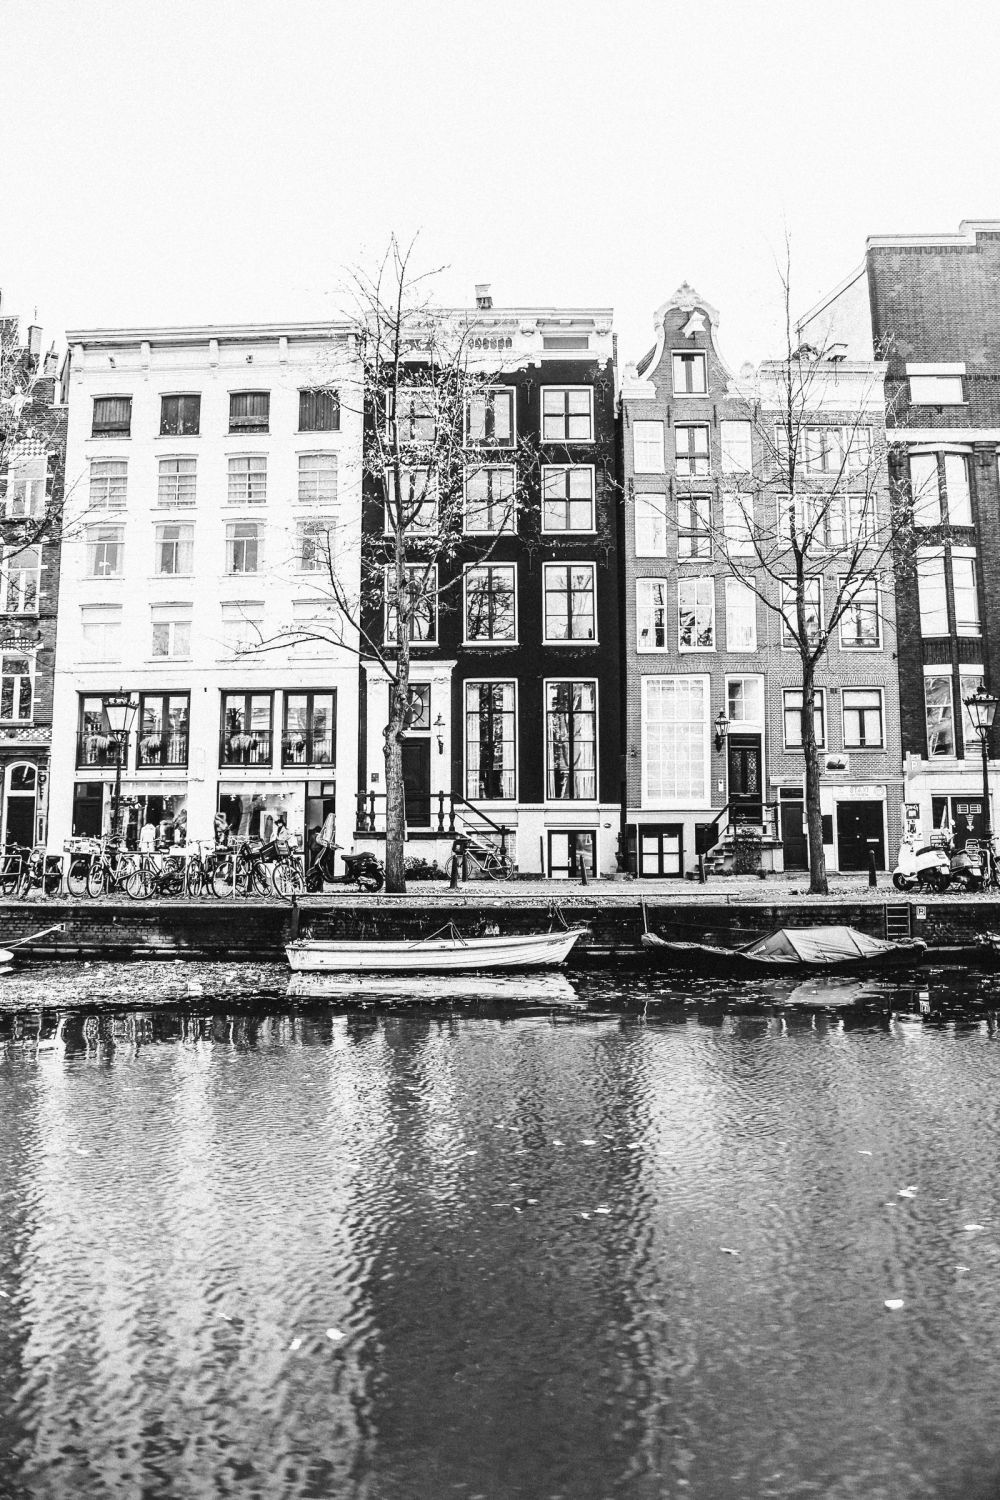 Exploring Amsterdam's Canal (By Driving A Boat For The First Time!) (10)